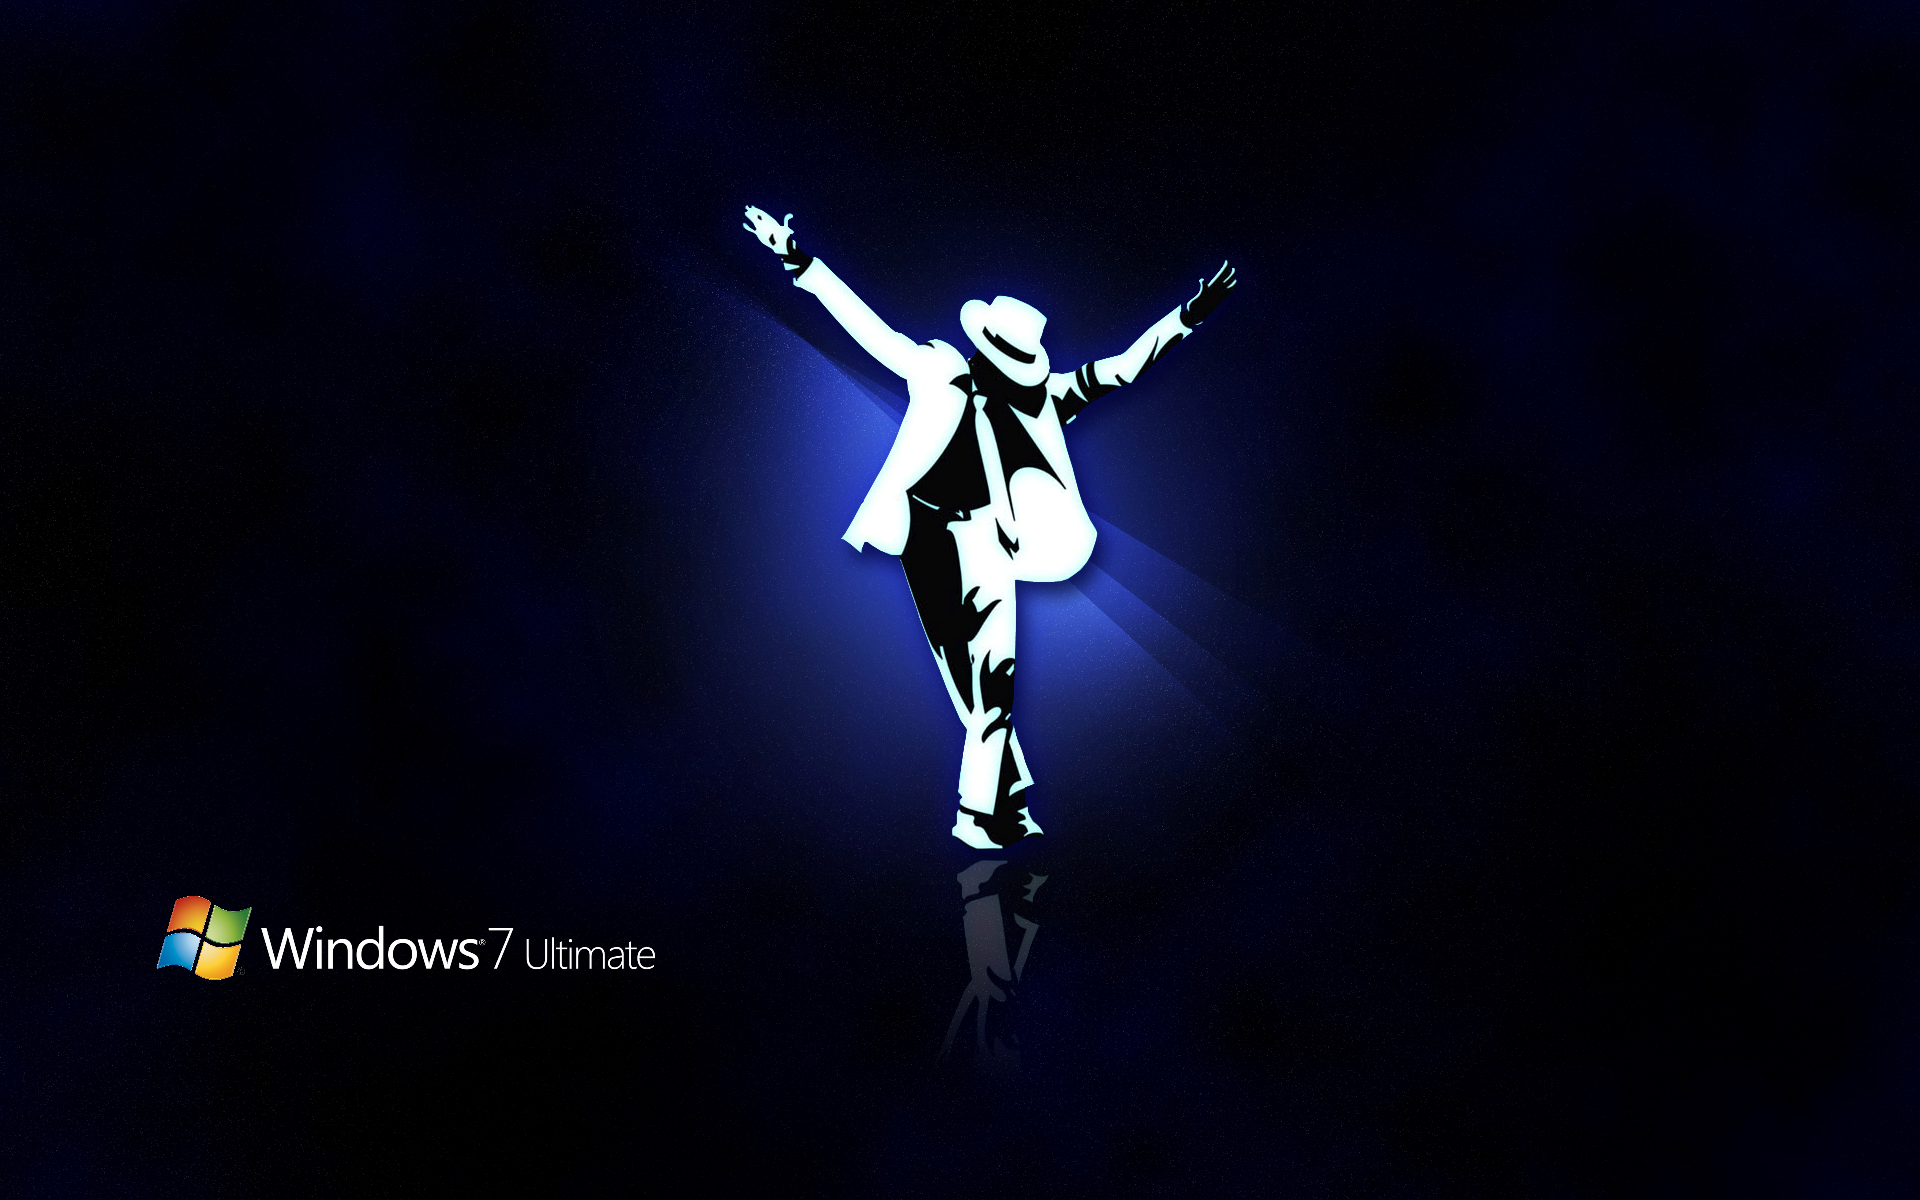 Michael Jackson Wallpaper And Theme For Windows 7 Redmond Pie